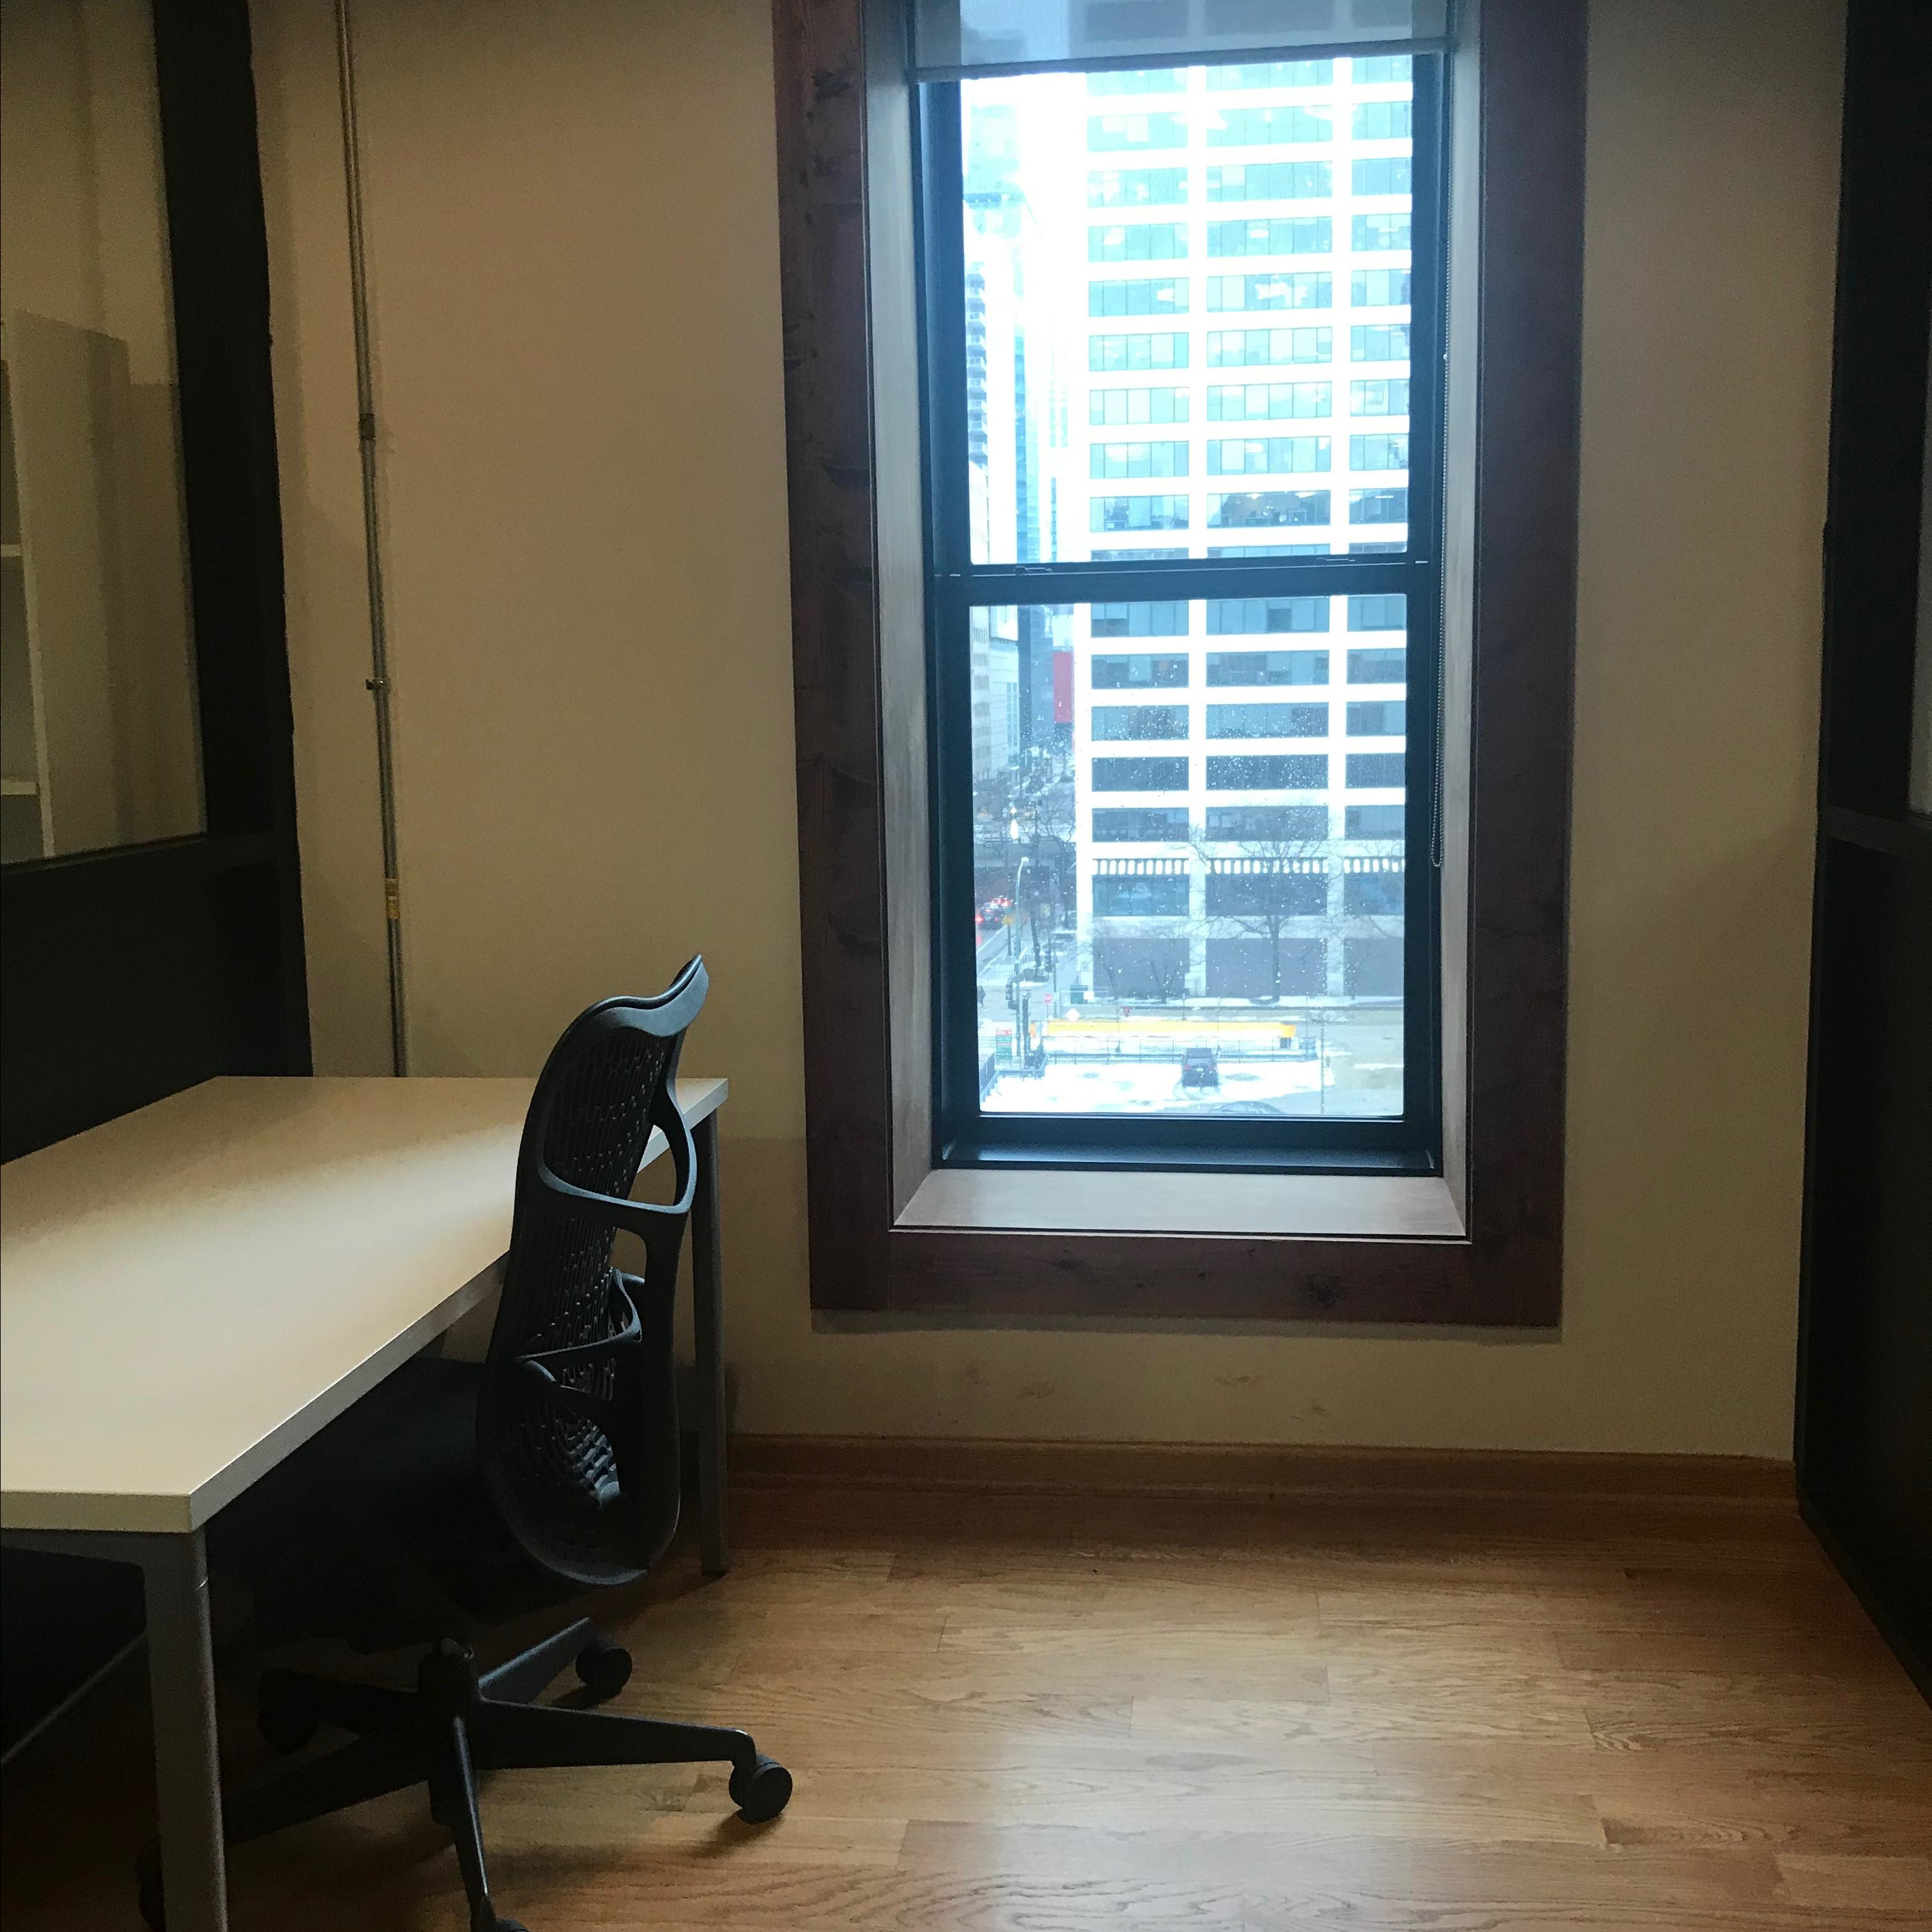 Rent24 (444 N. Wabash) - Office 4